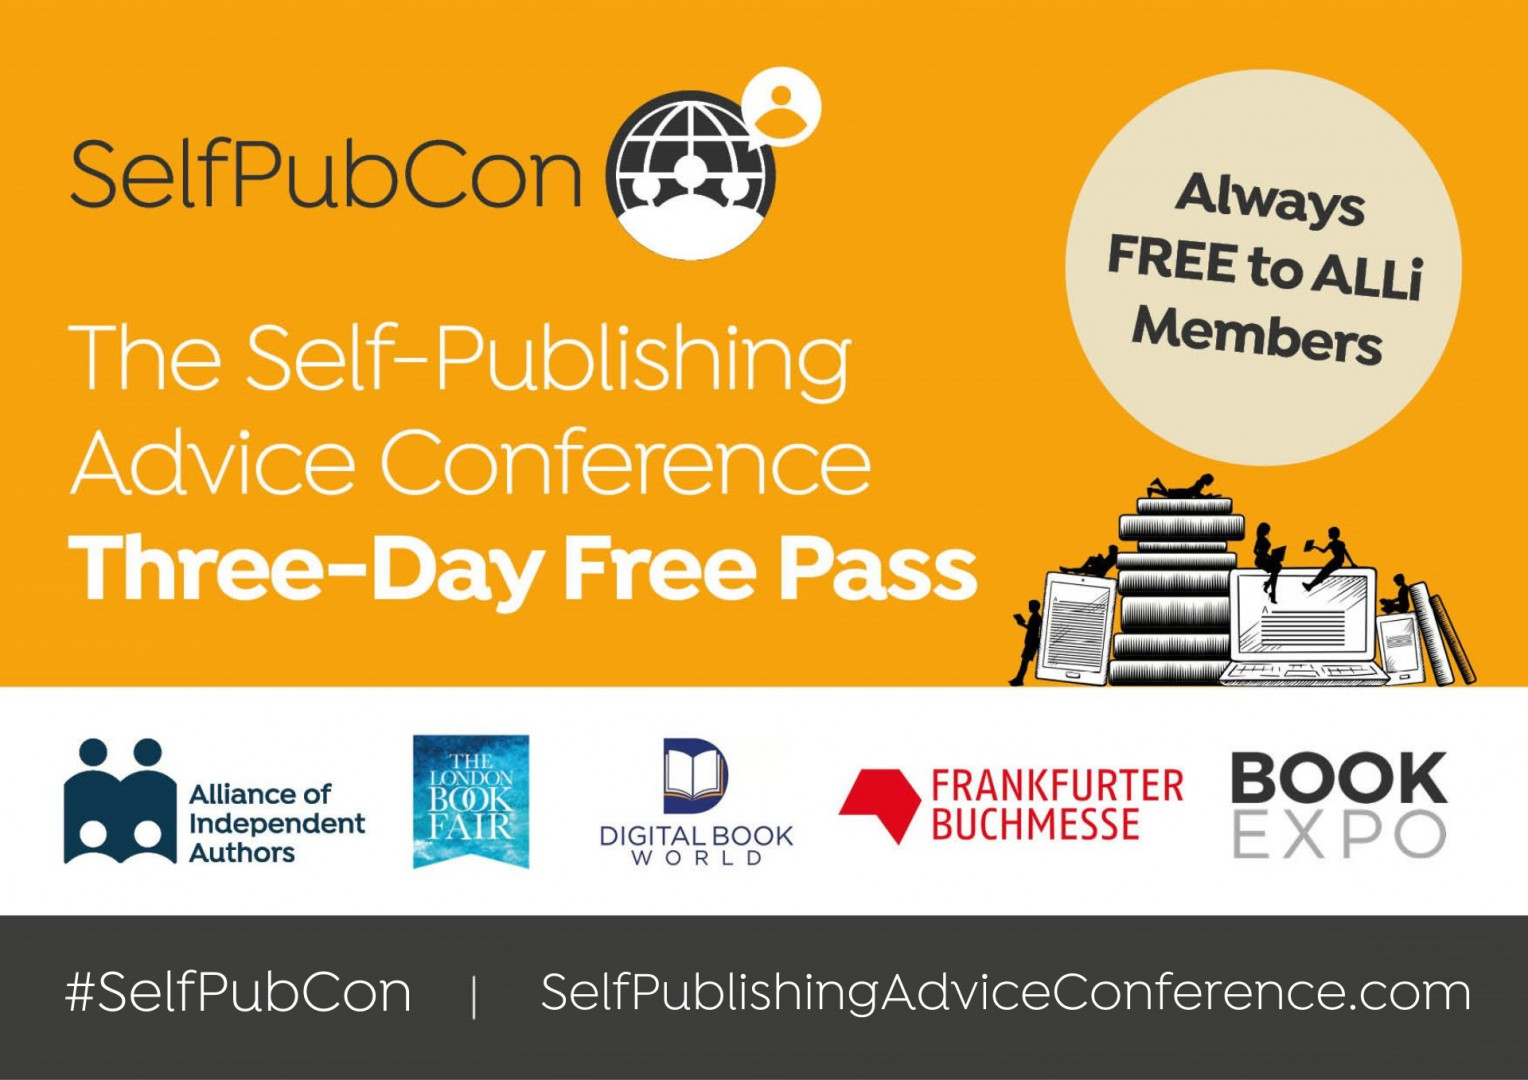 #SelfPubCon: The Self-Publishing Advice Conference